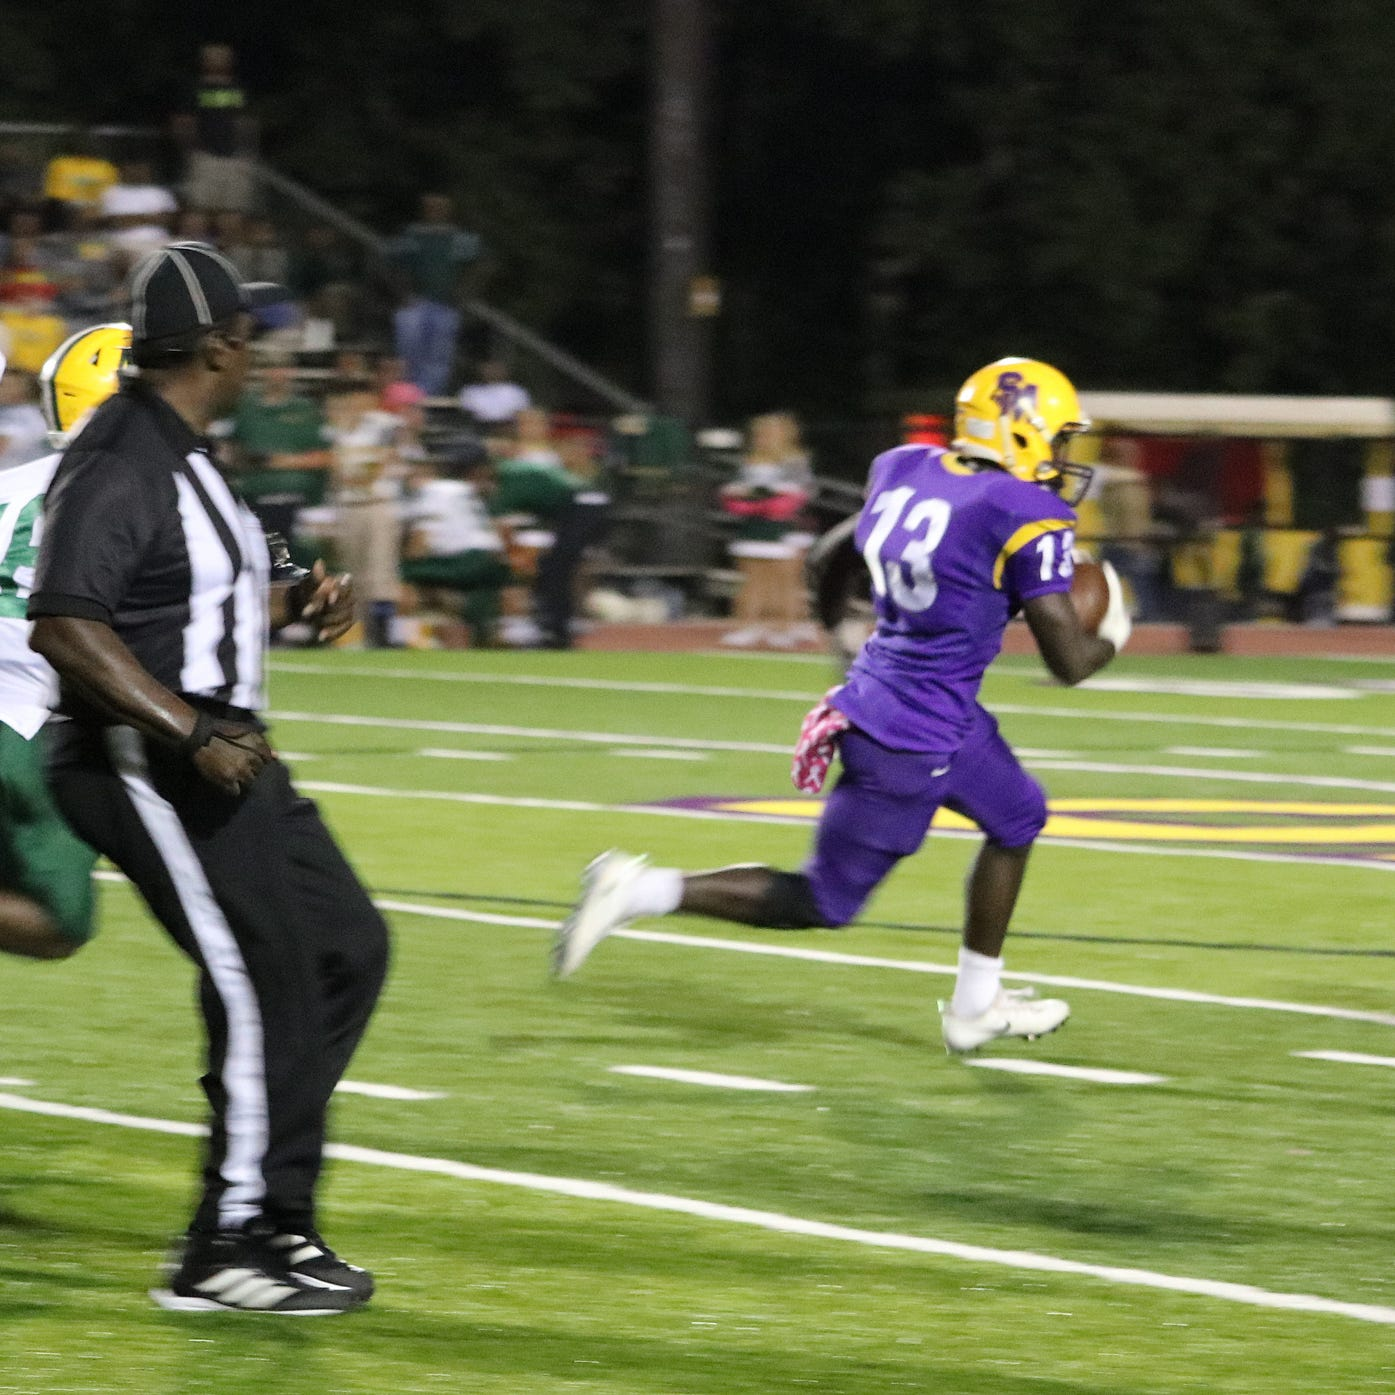 St. Martinville's Benjamin shows speed and strength as Tigers run over Cecilia